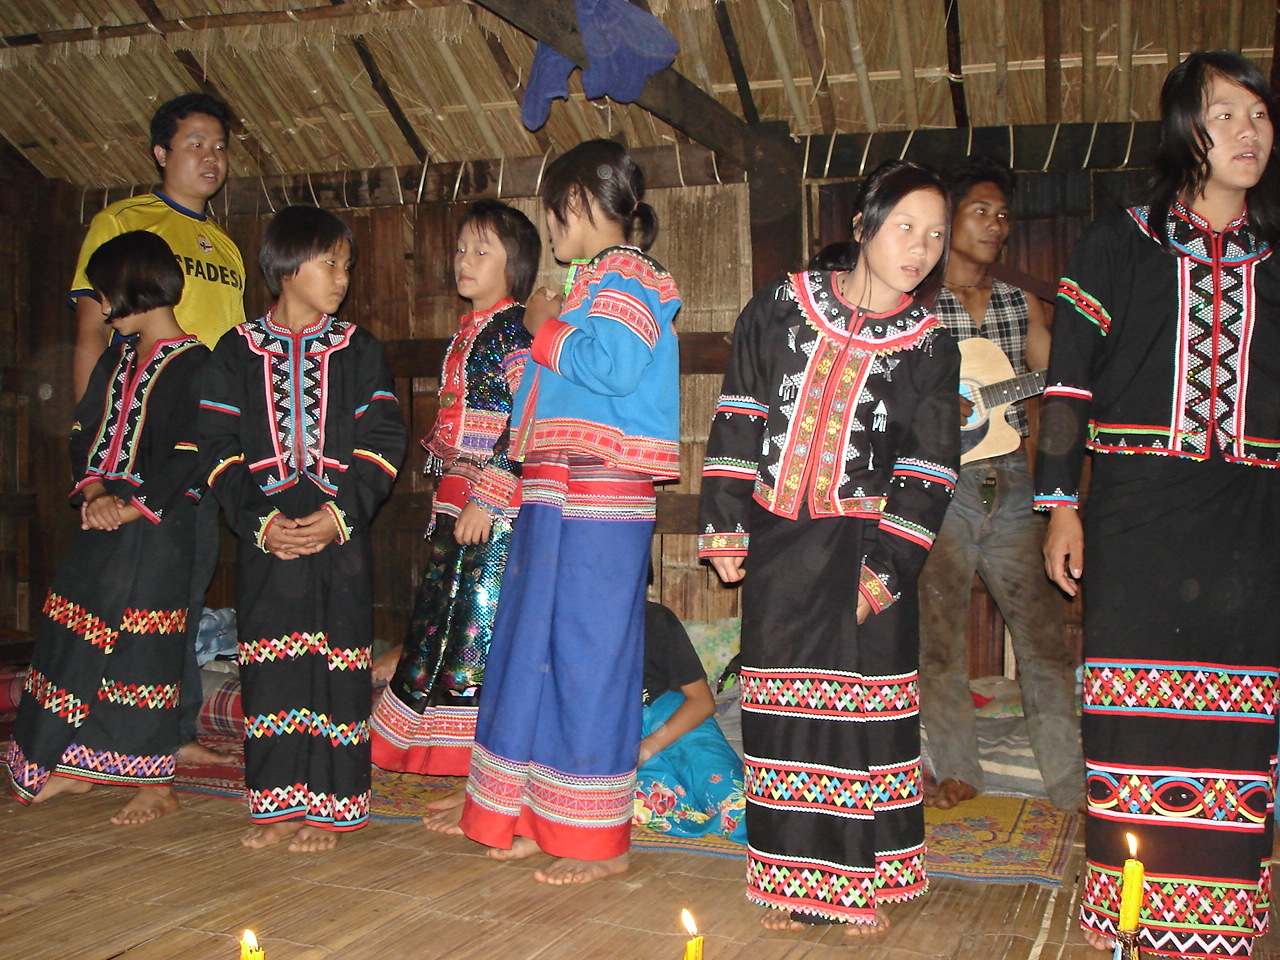 https://commons.wikimedia.org/wiki/File:Lahu_girls.jpg#/media/File:Lahu_girls.jpg